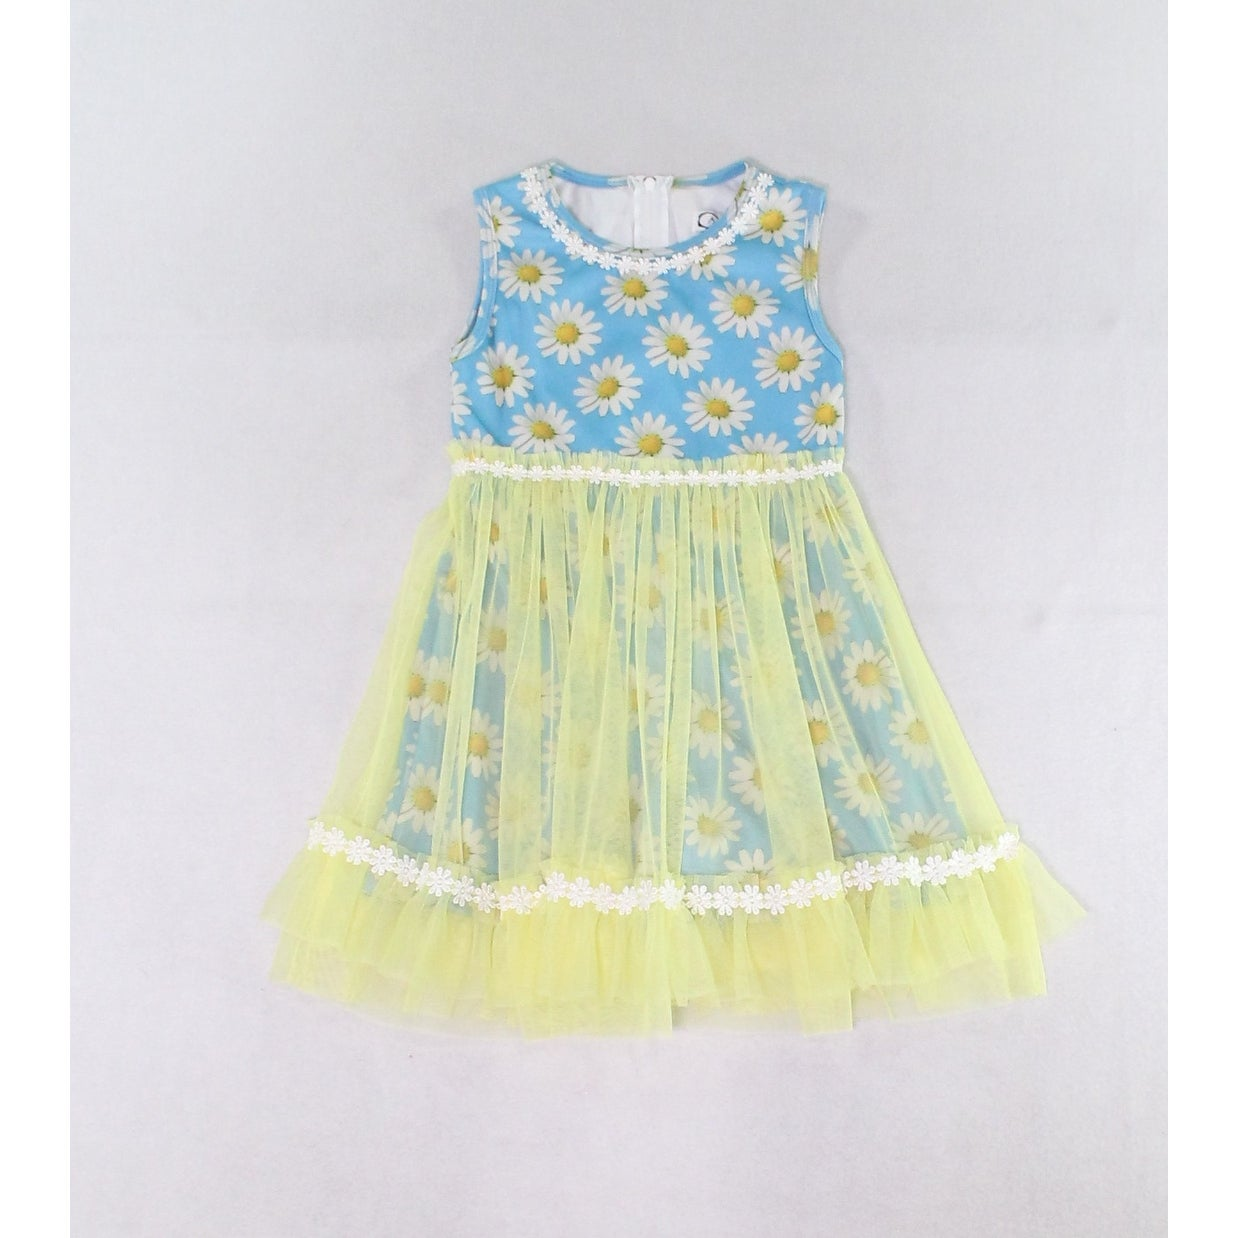 Caeli Girls Dresses Blue Yellows Size 5 Floral Print Mesh Overlay